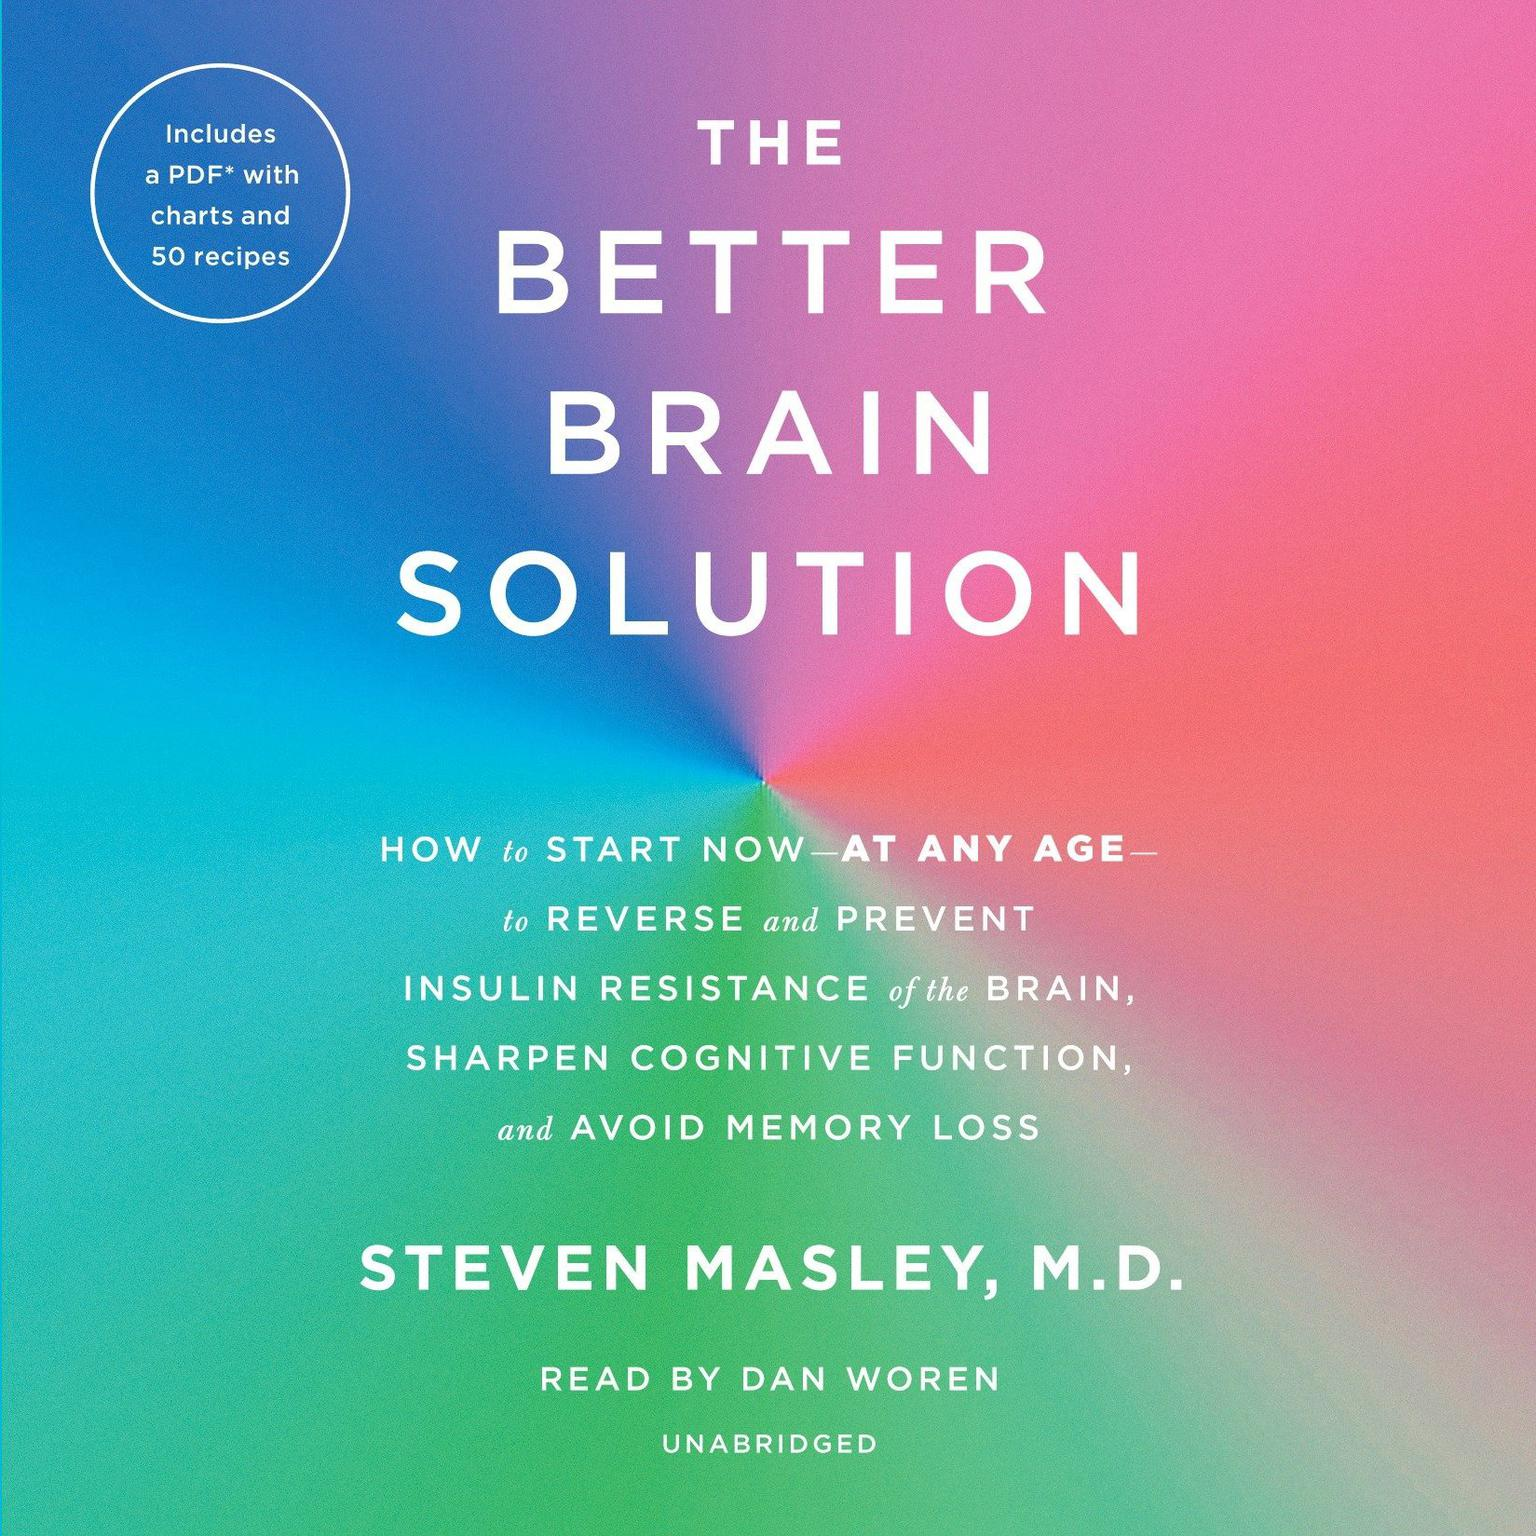 The Better Brain Solution: How to Start Now--at Any Age--to Reverse and Prevent Insulin Resistance of the Brain, Sharpen Cognitive Function, and Avoid Memory Loss Audiobook, by Steven Masley